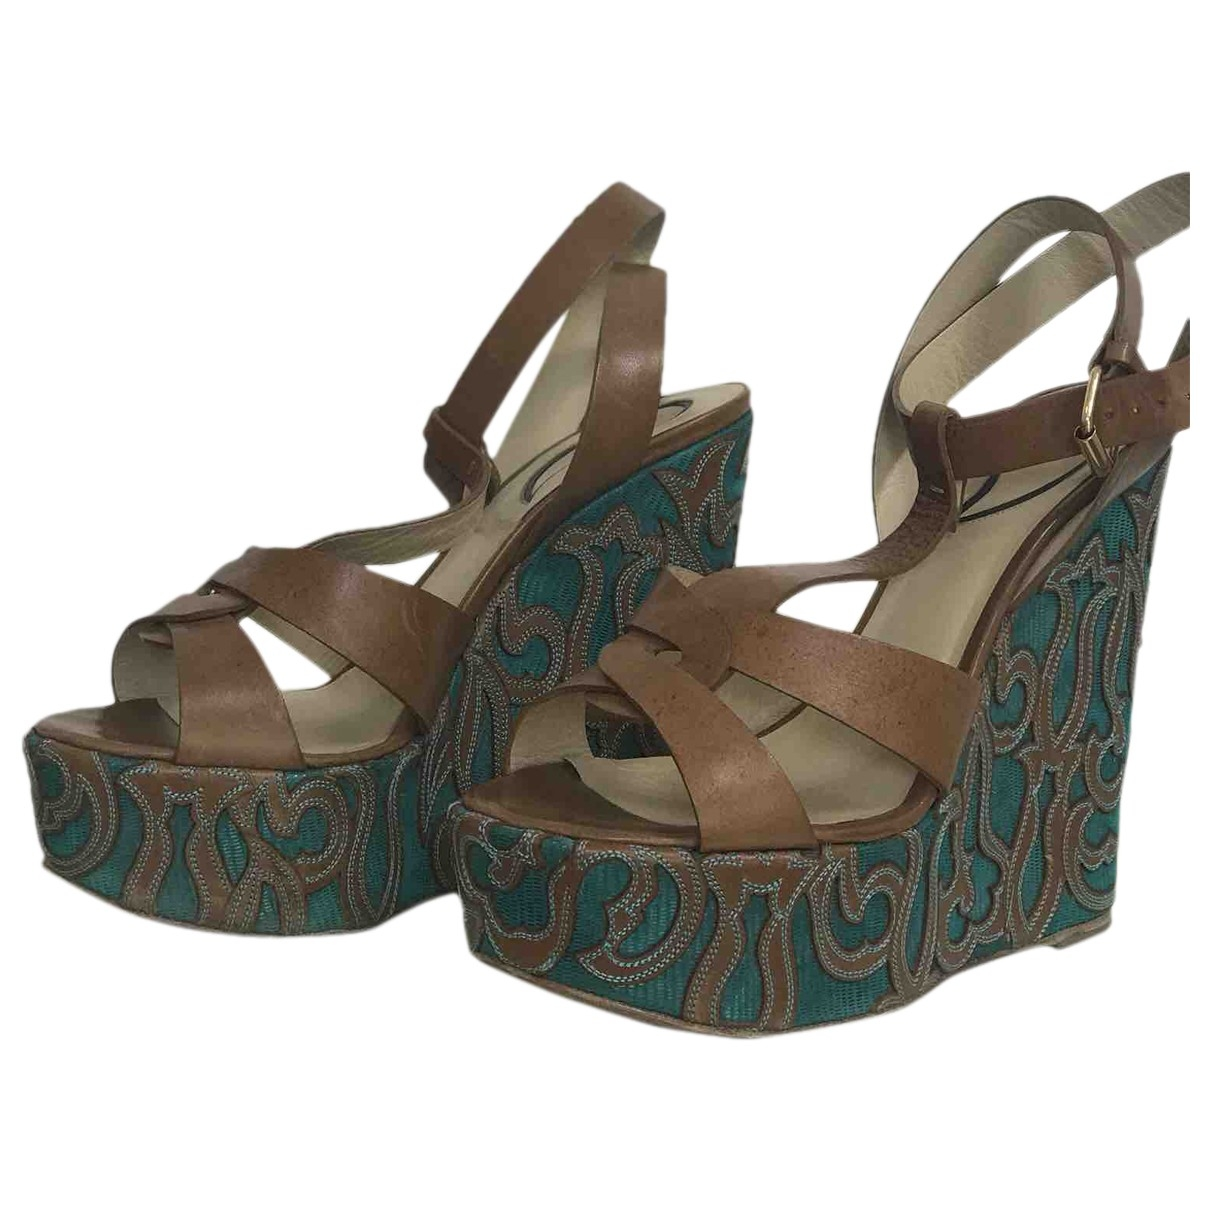 Etro \N Brown Leather Sandals for Women 39 EU